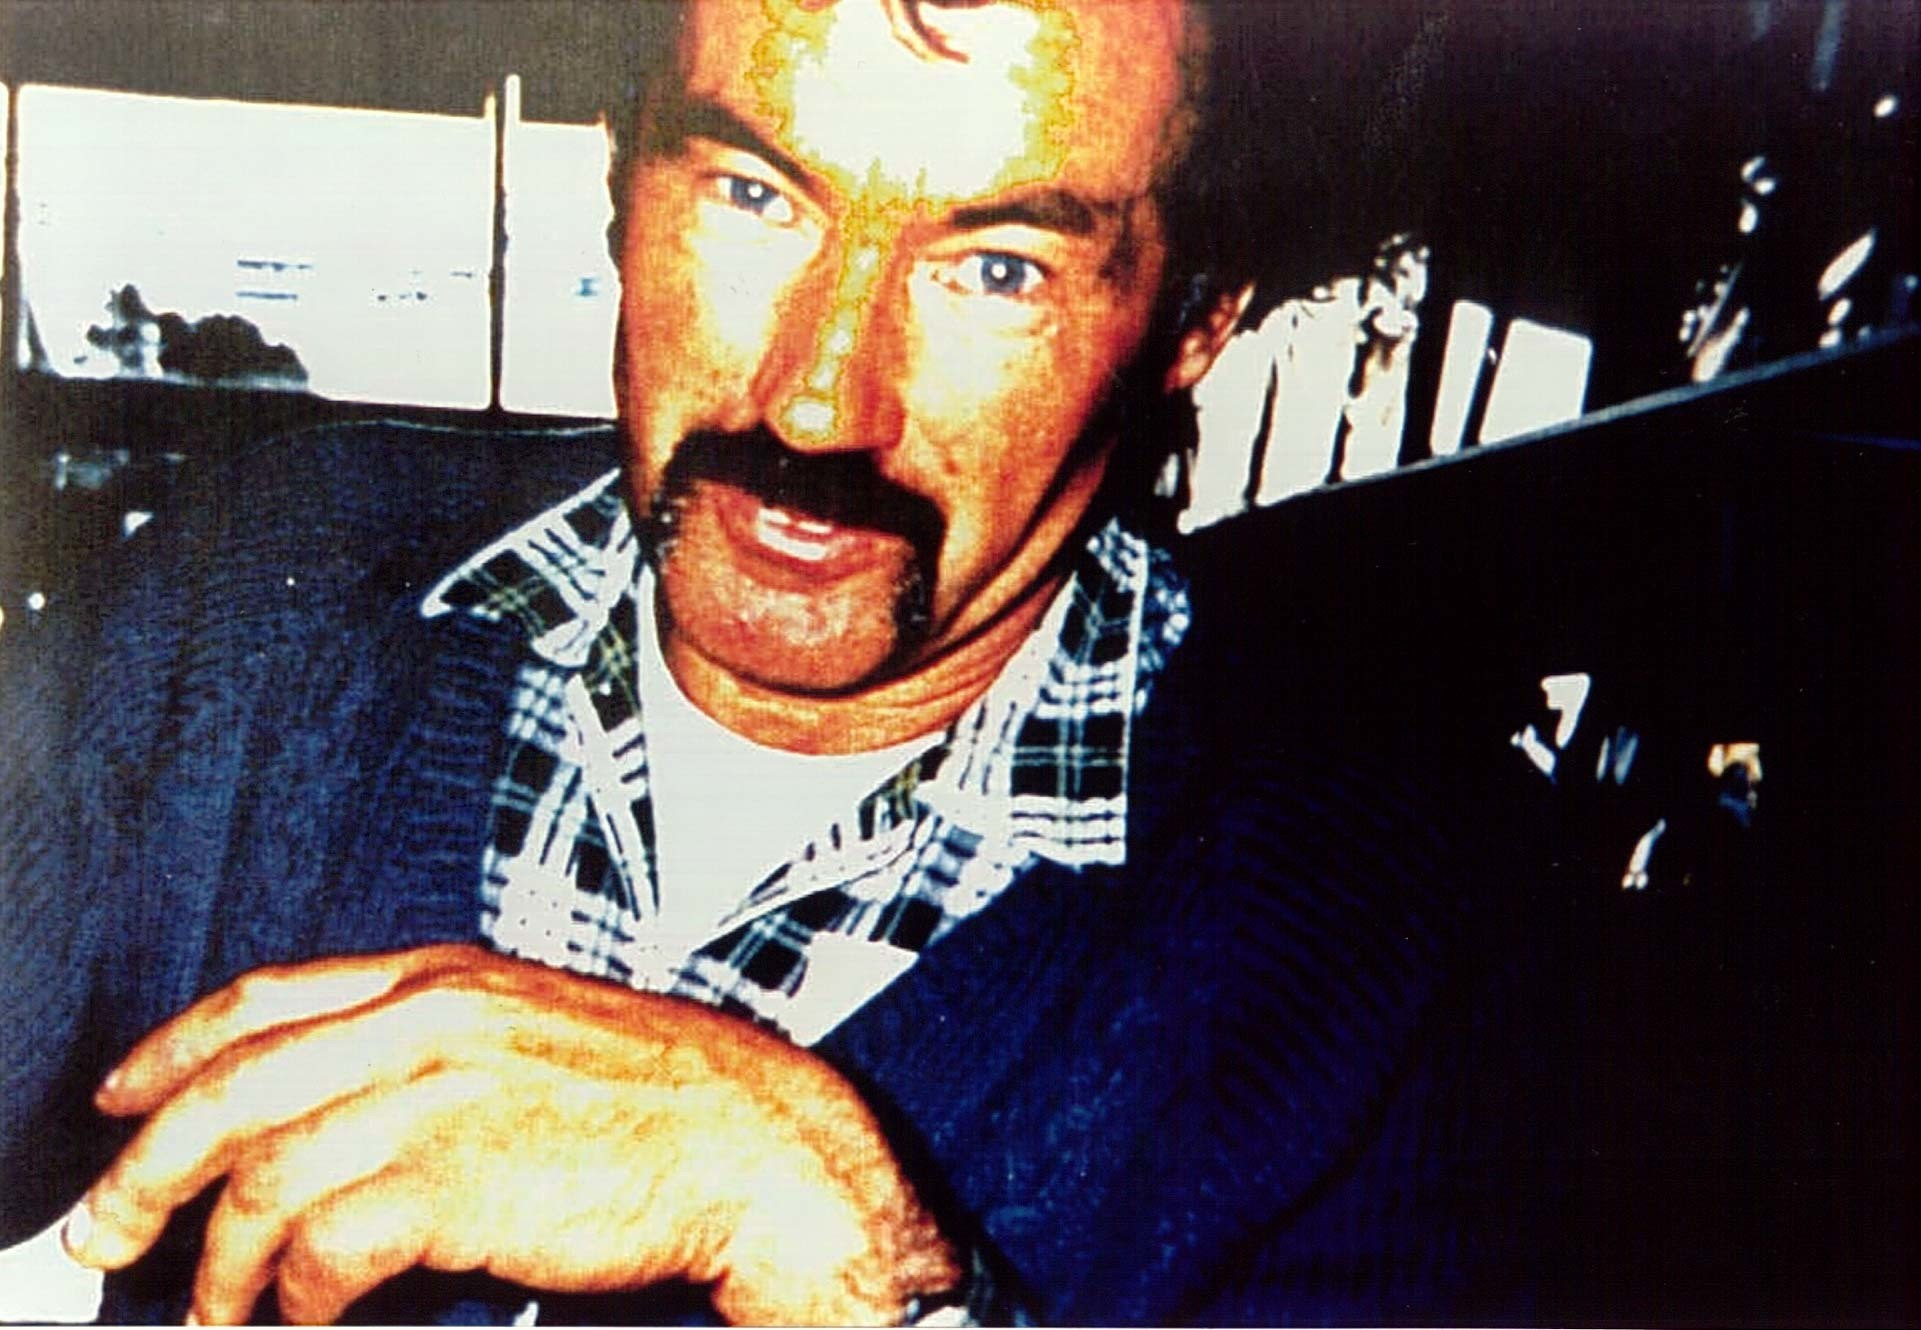 Abacus Media Rights acquires distribution rights for new documentary 'Ivan Milat: Buried Secrets' and announces sales